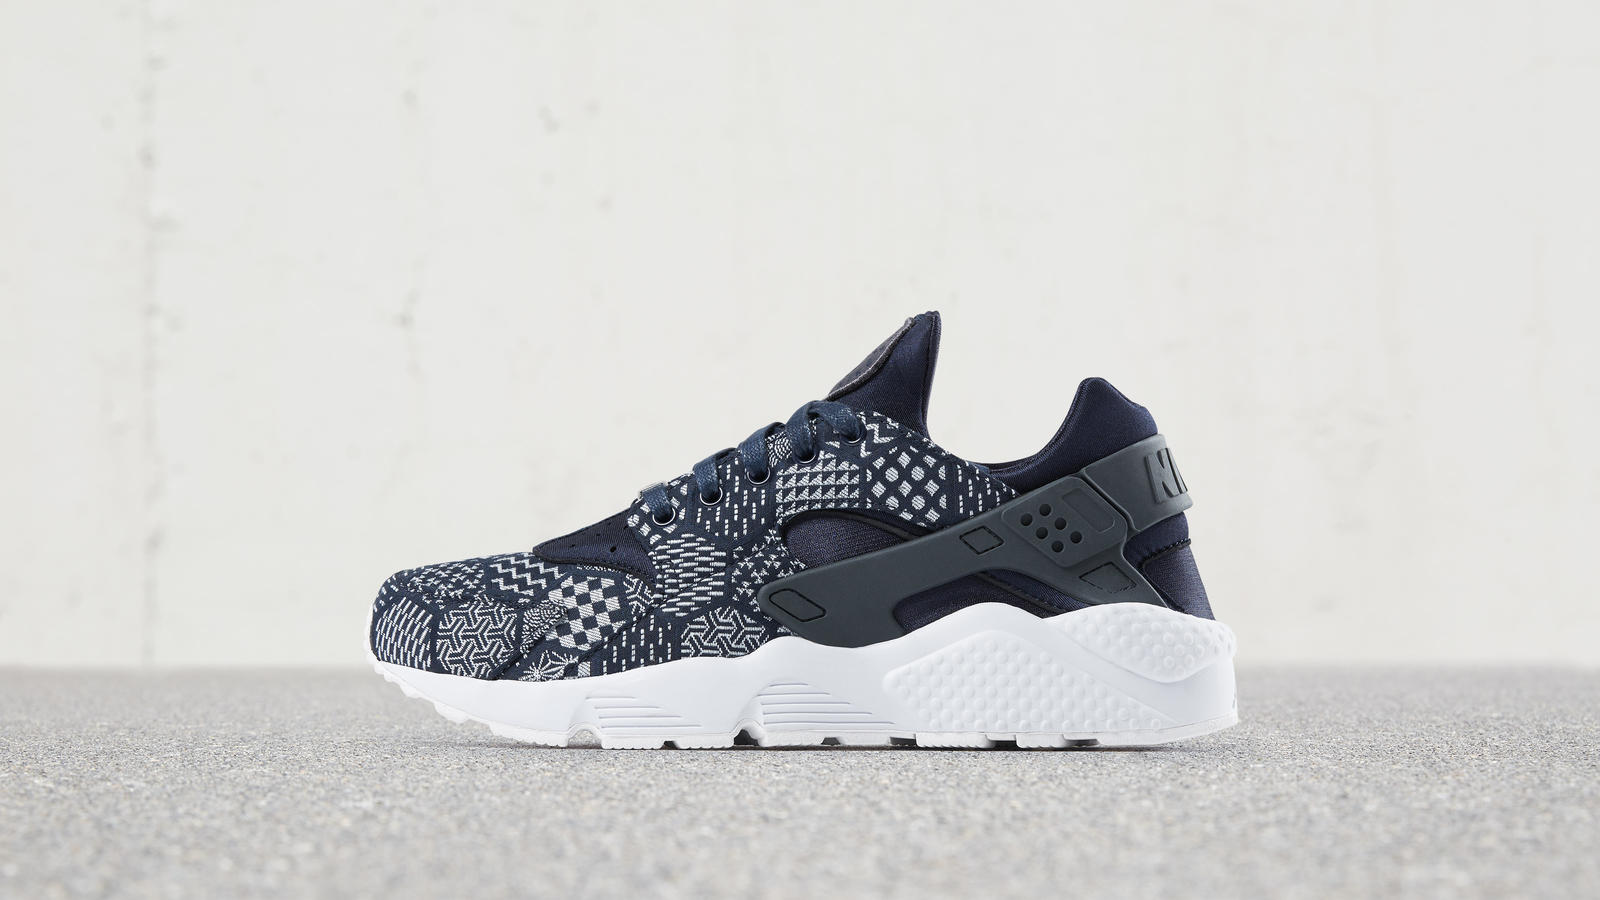 170620 footwear huarache multi 0135 hd 1600